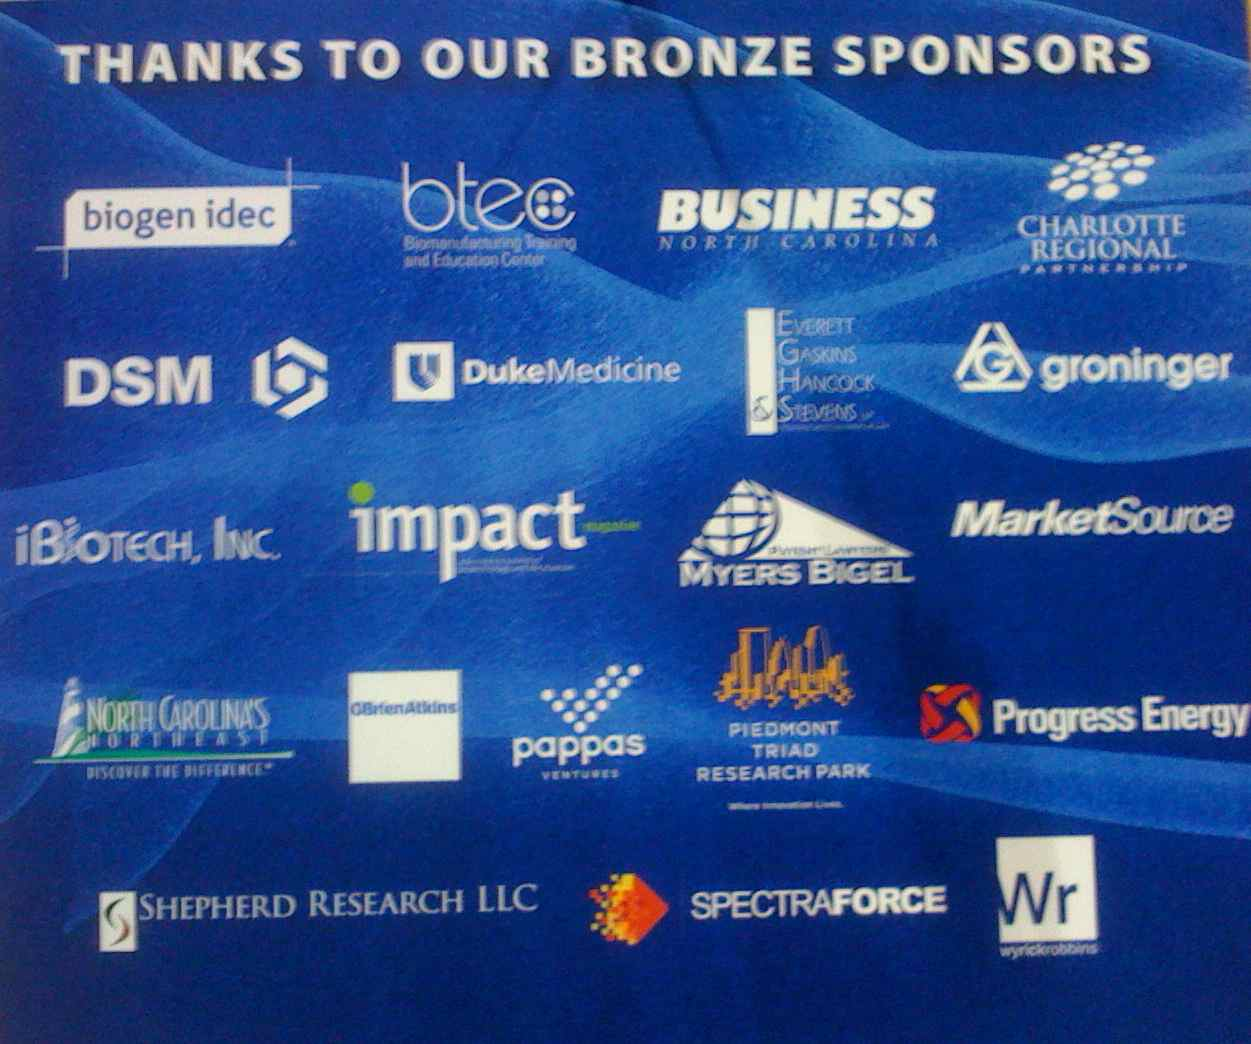 Bio2010 logo of bronze sponsorship